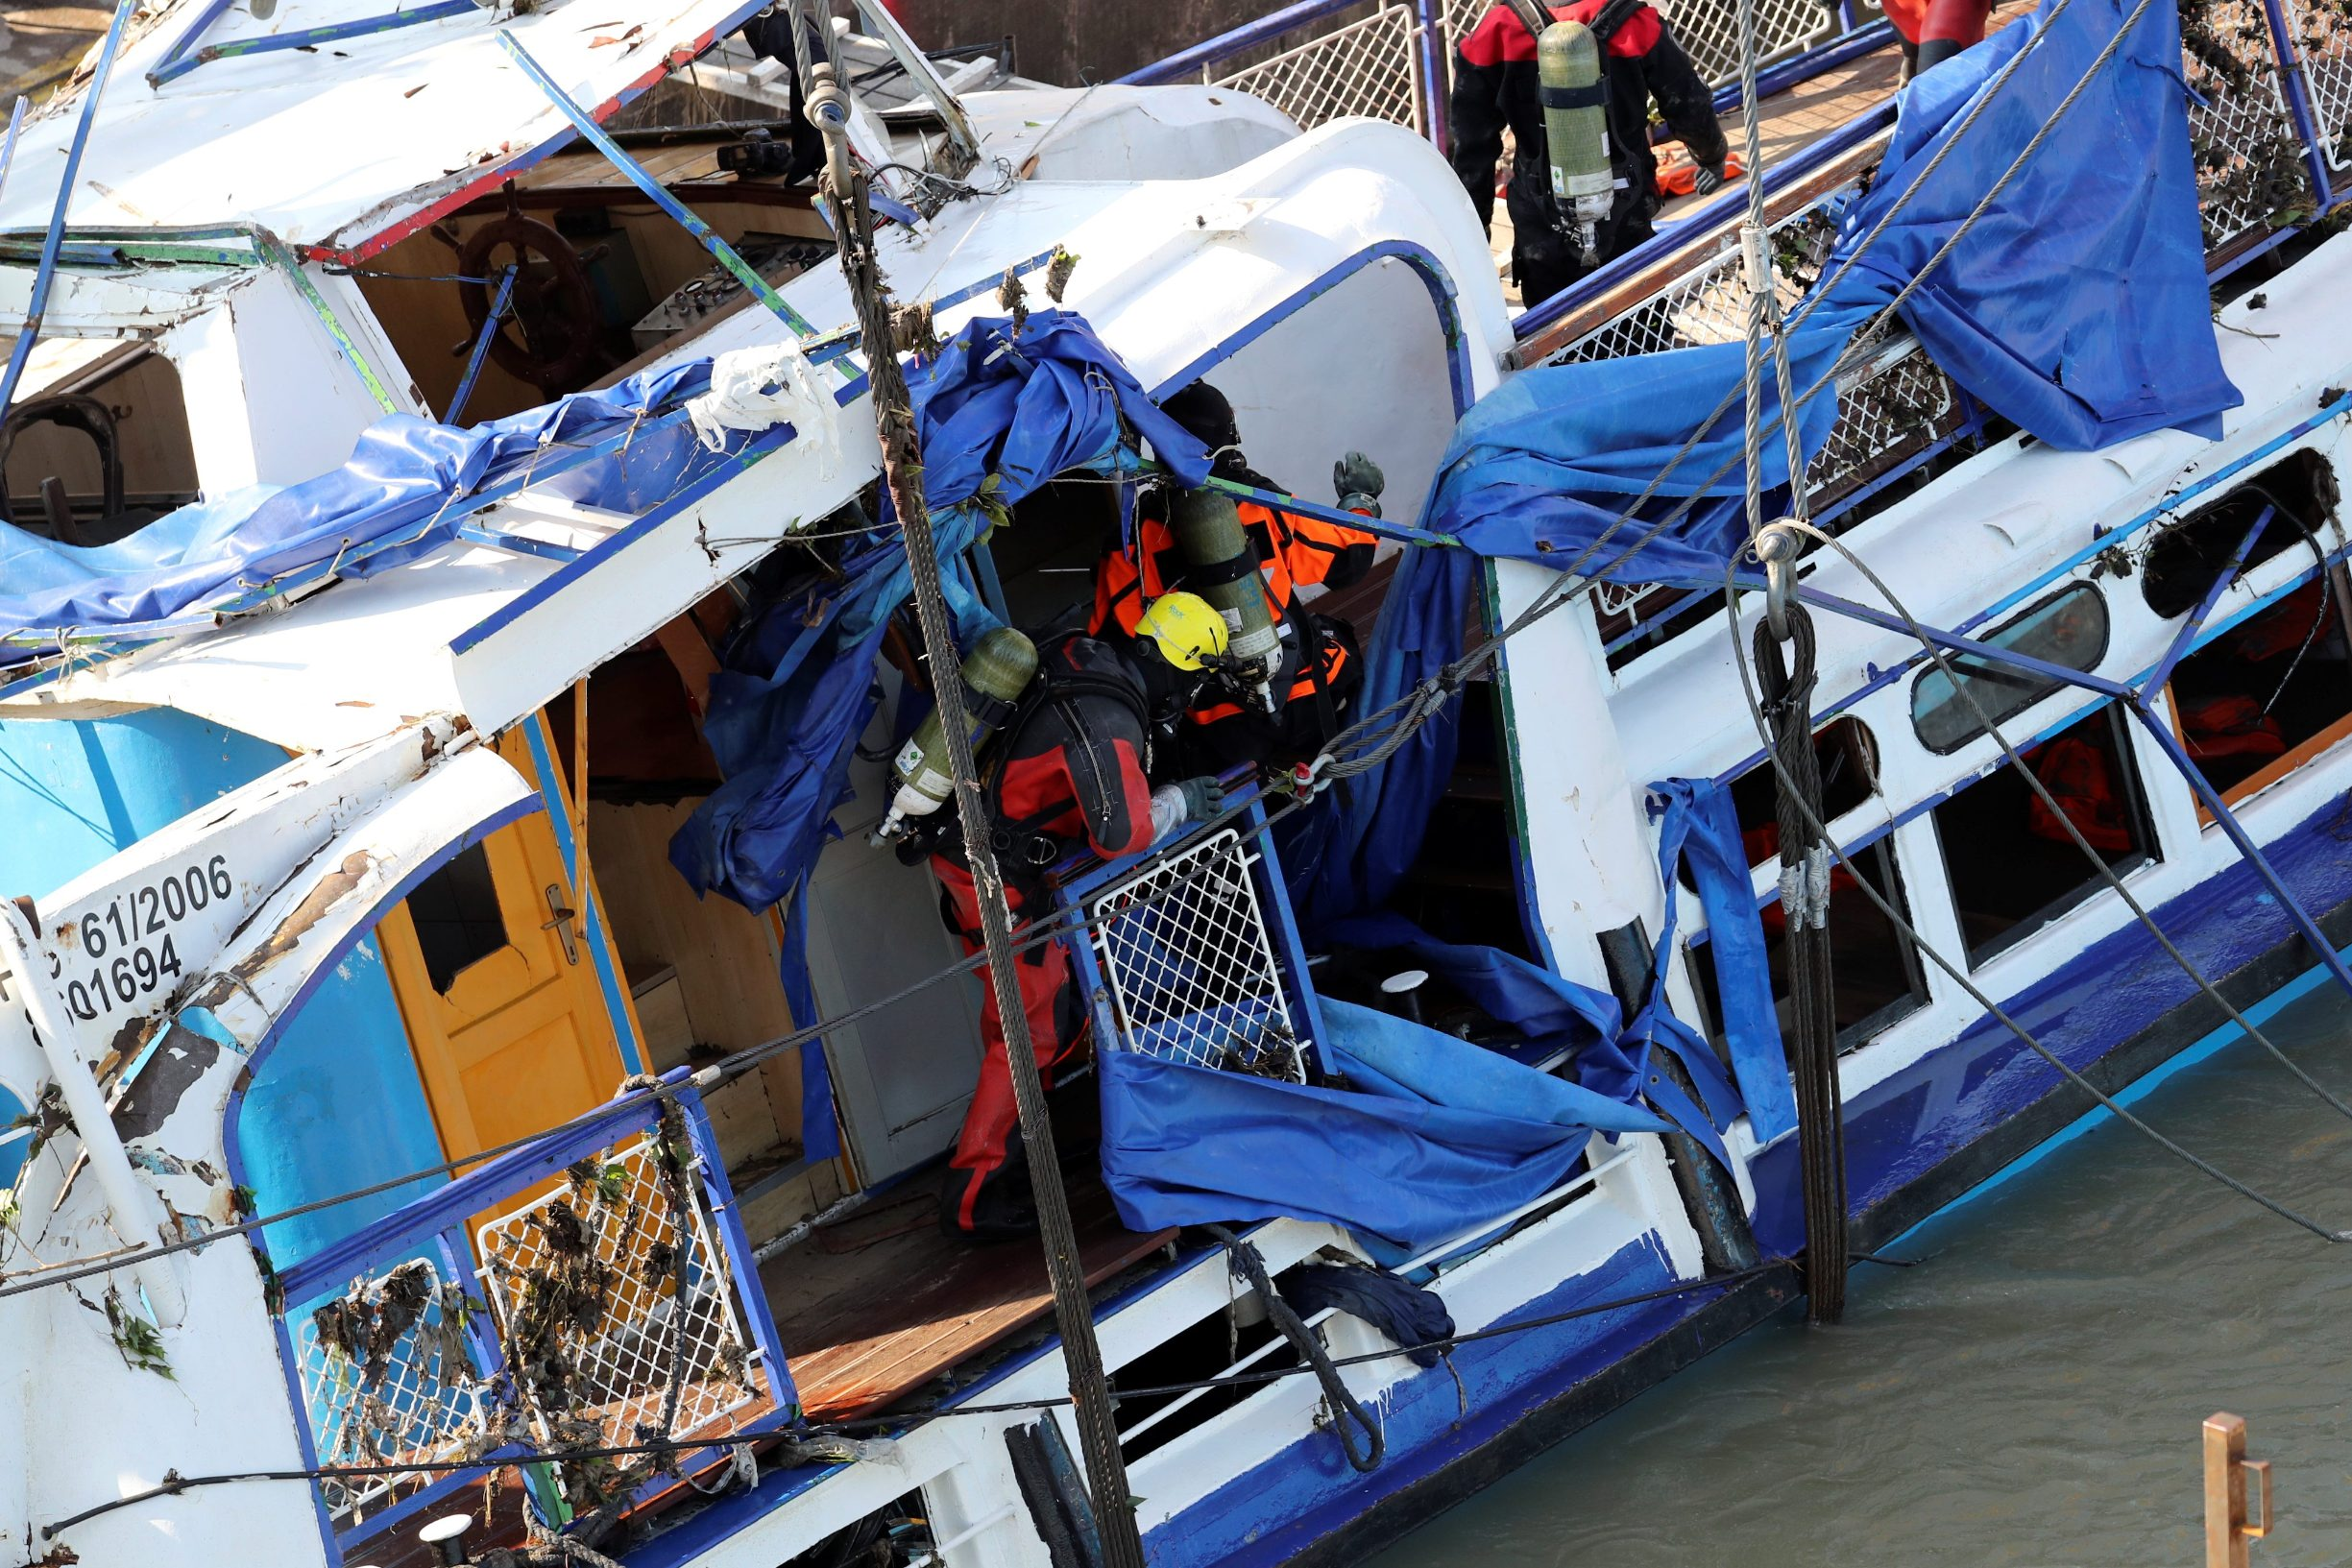 Members of a salvage crew are seen aboard The Mermaid, a Hungarian boat which sank in the Danube river near Margaret bridge, during a salvage operation in Budapest, Hungary, June 11, 2019. REUTERS/Marko Djurica